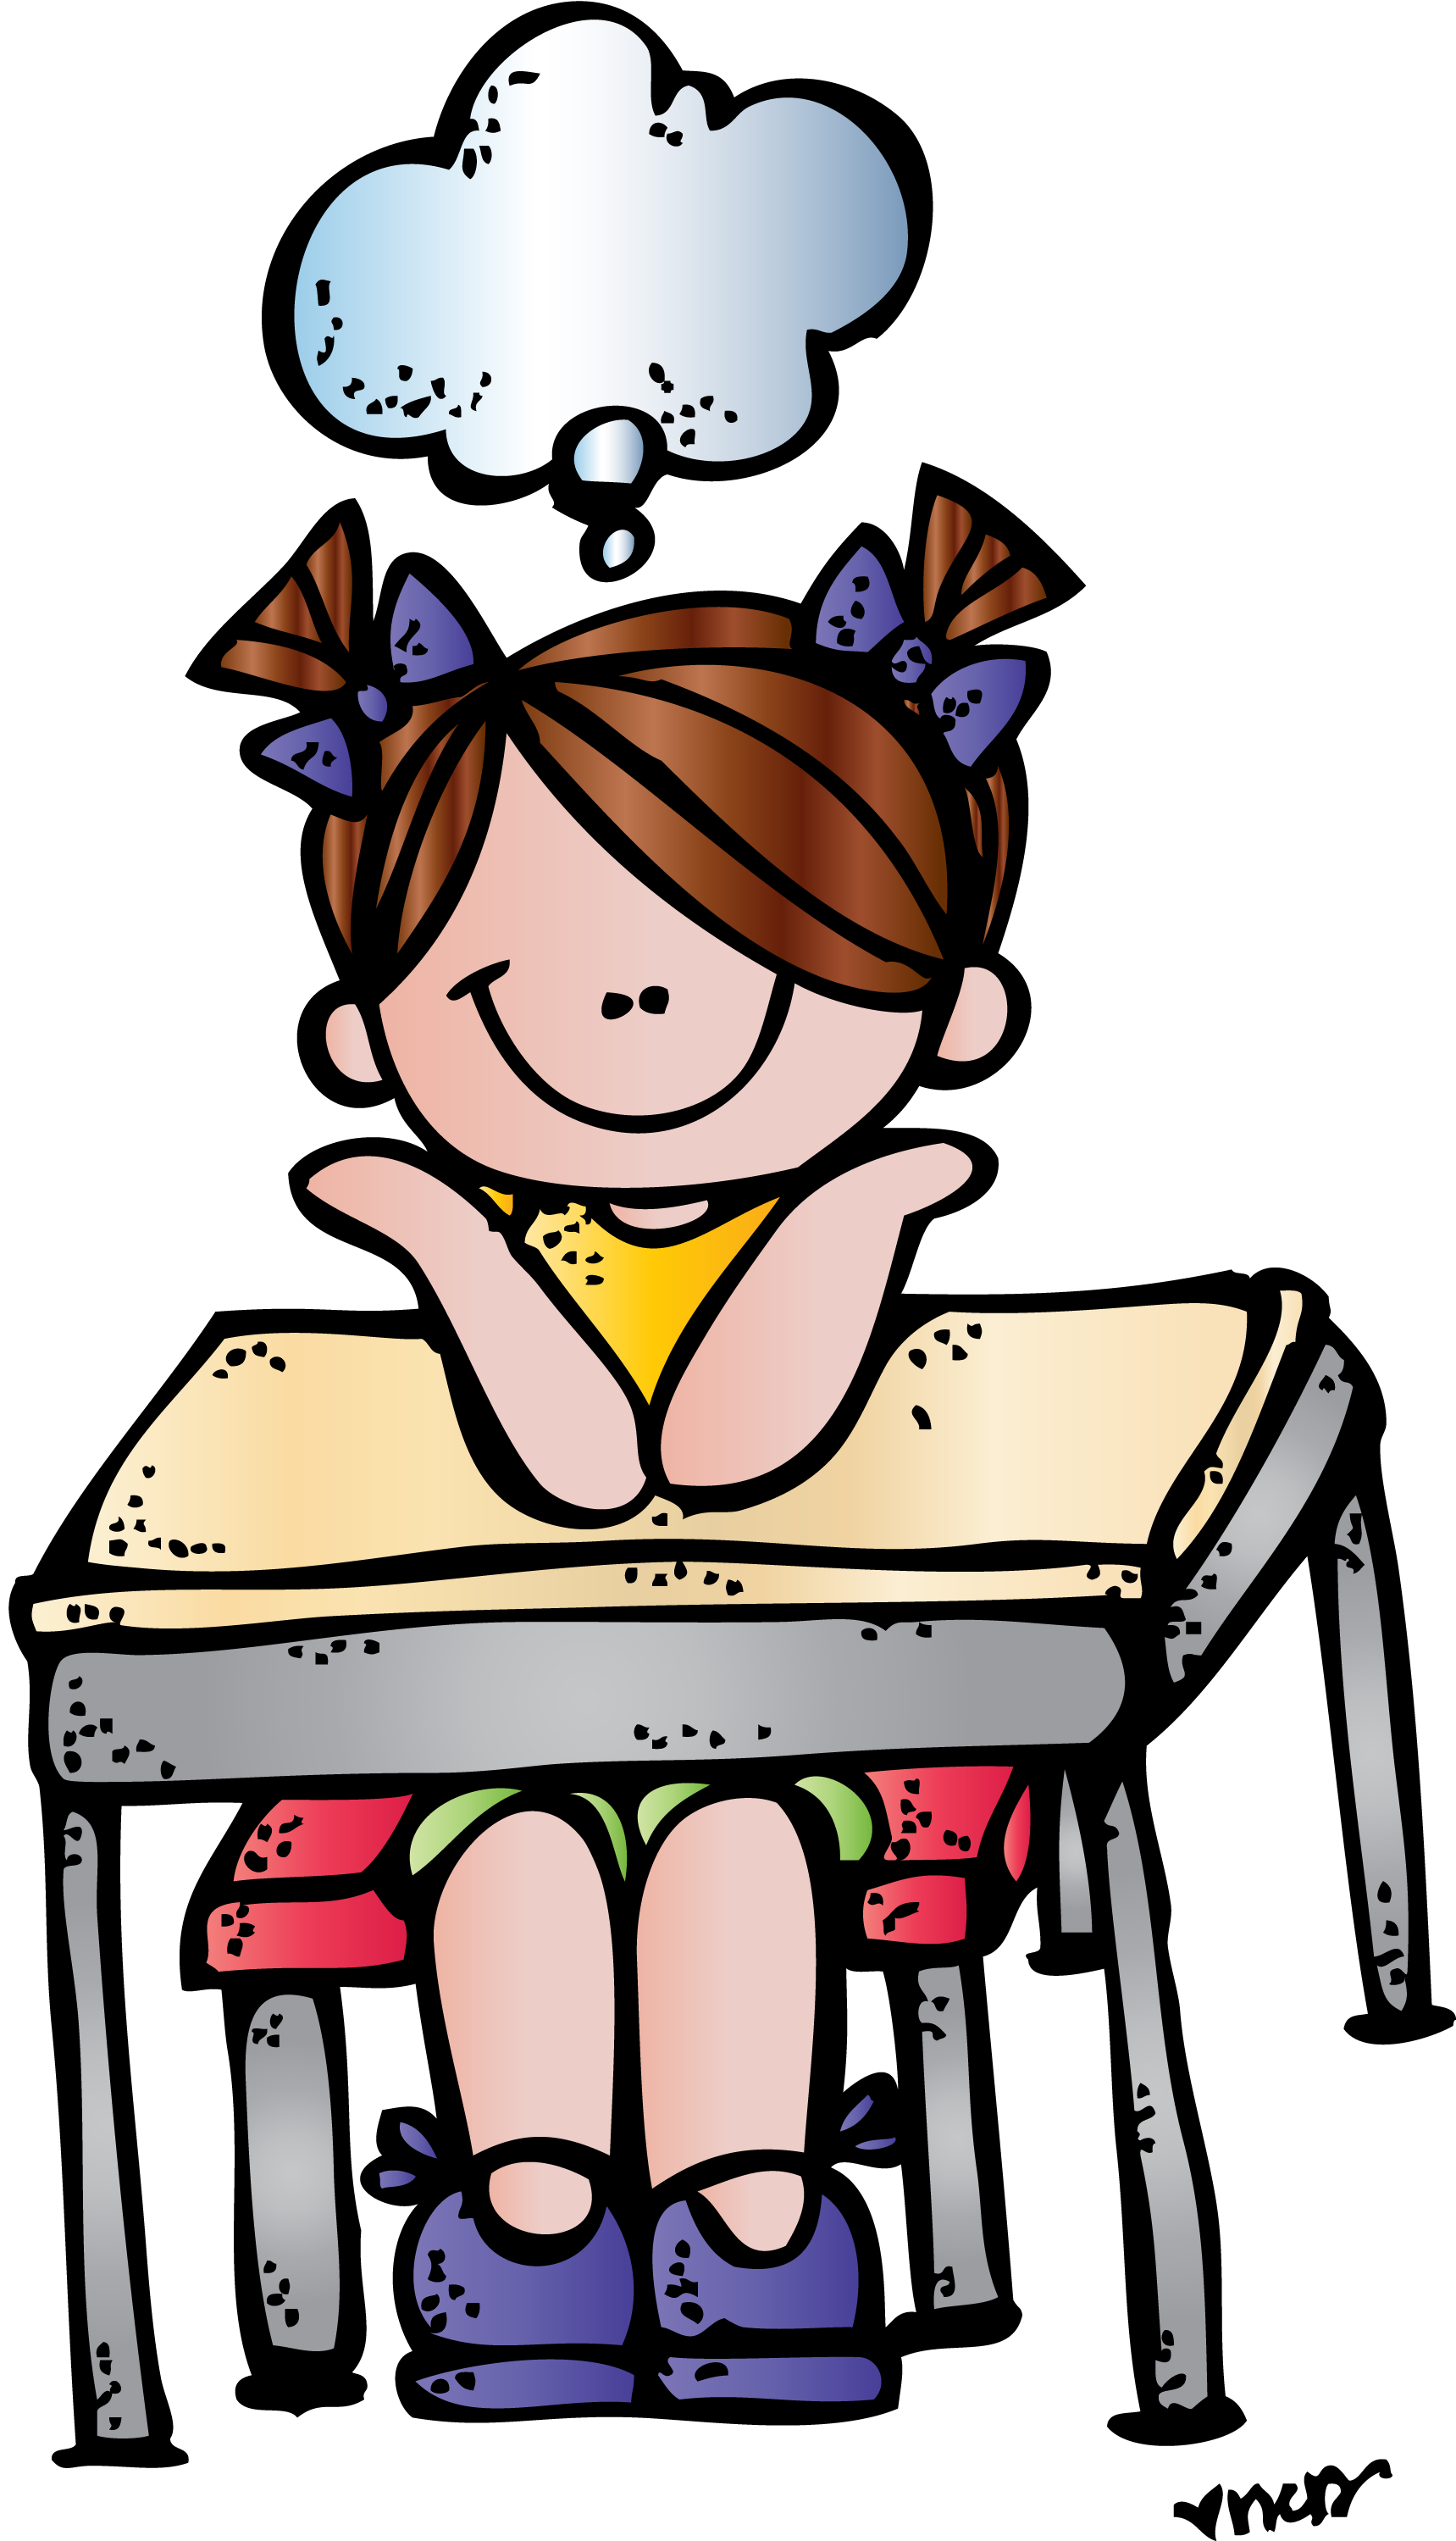 Student directory clipart graphic library download MELONHEADZ CLIPART - Google Search | Primary Clip Art | Clip art ... graphic library download